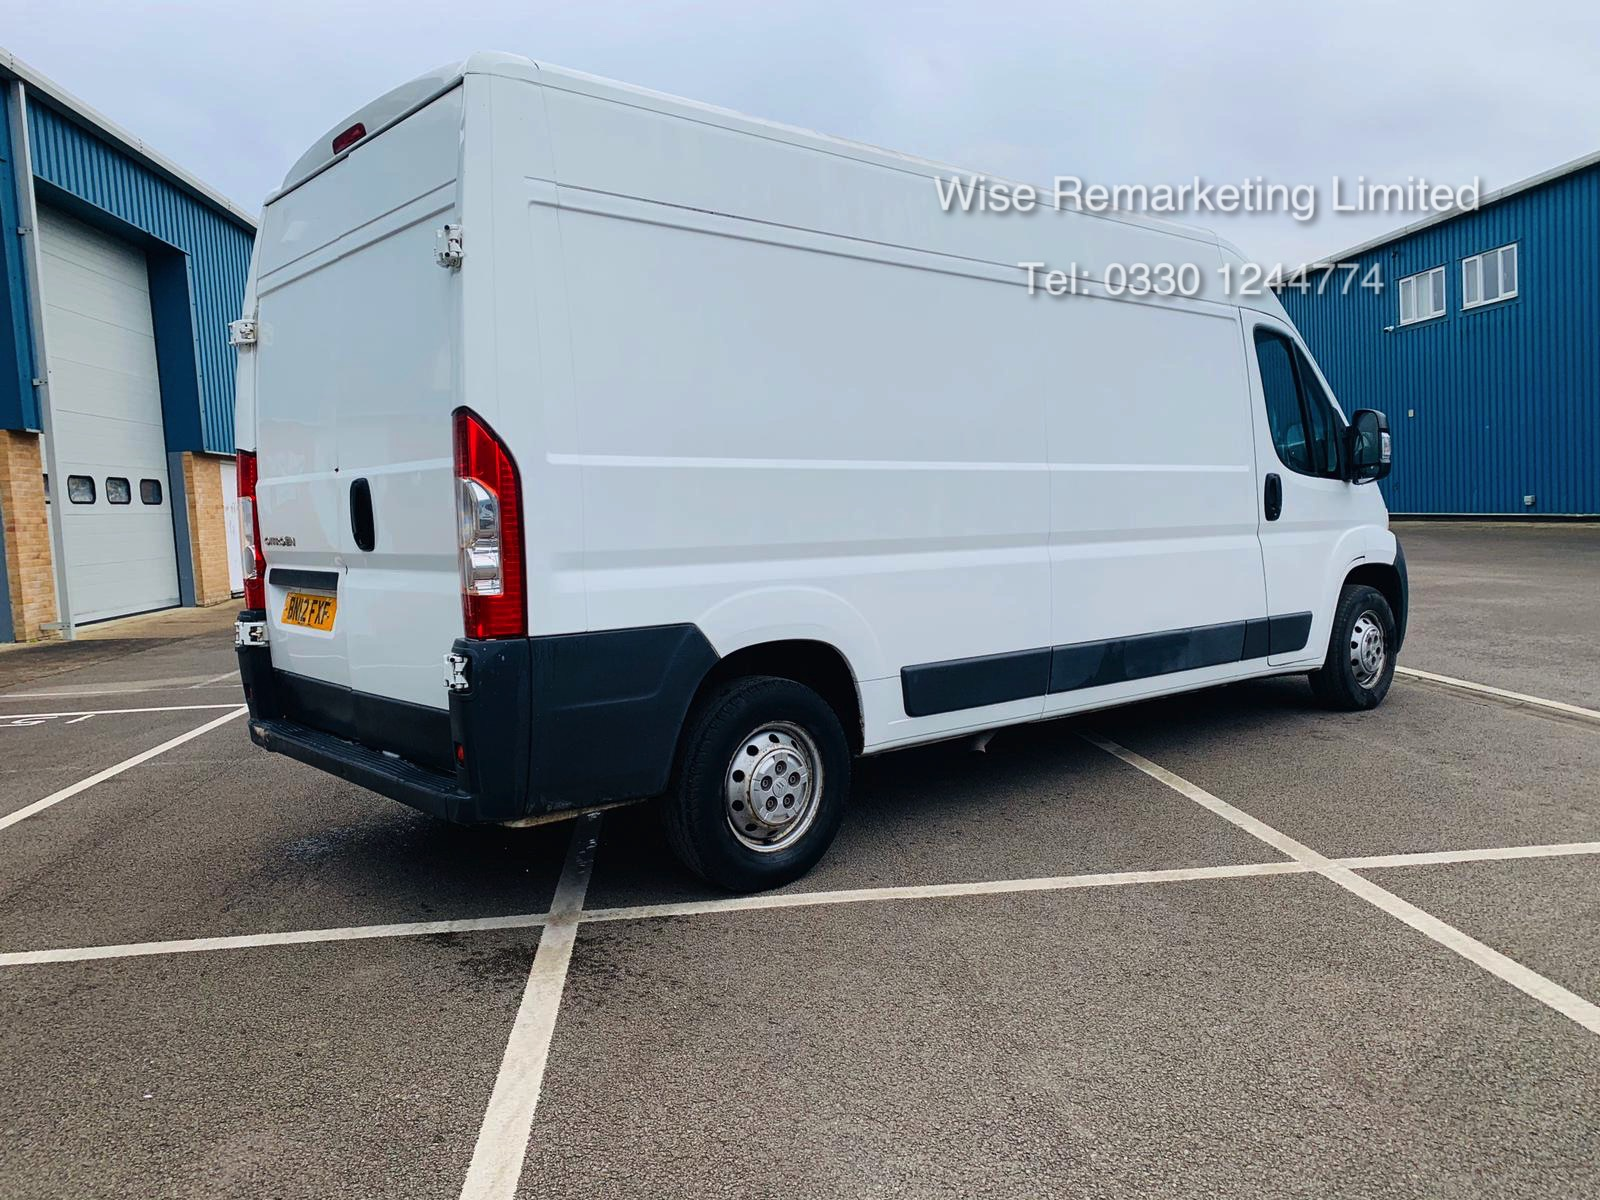 Citroen Relay 35 2.2 HDi (130 BHP) LWB 2012 12 Reg - 6 Speed - Ply Lined SAVE 20% NO VAT - Image 4 of 20